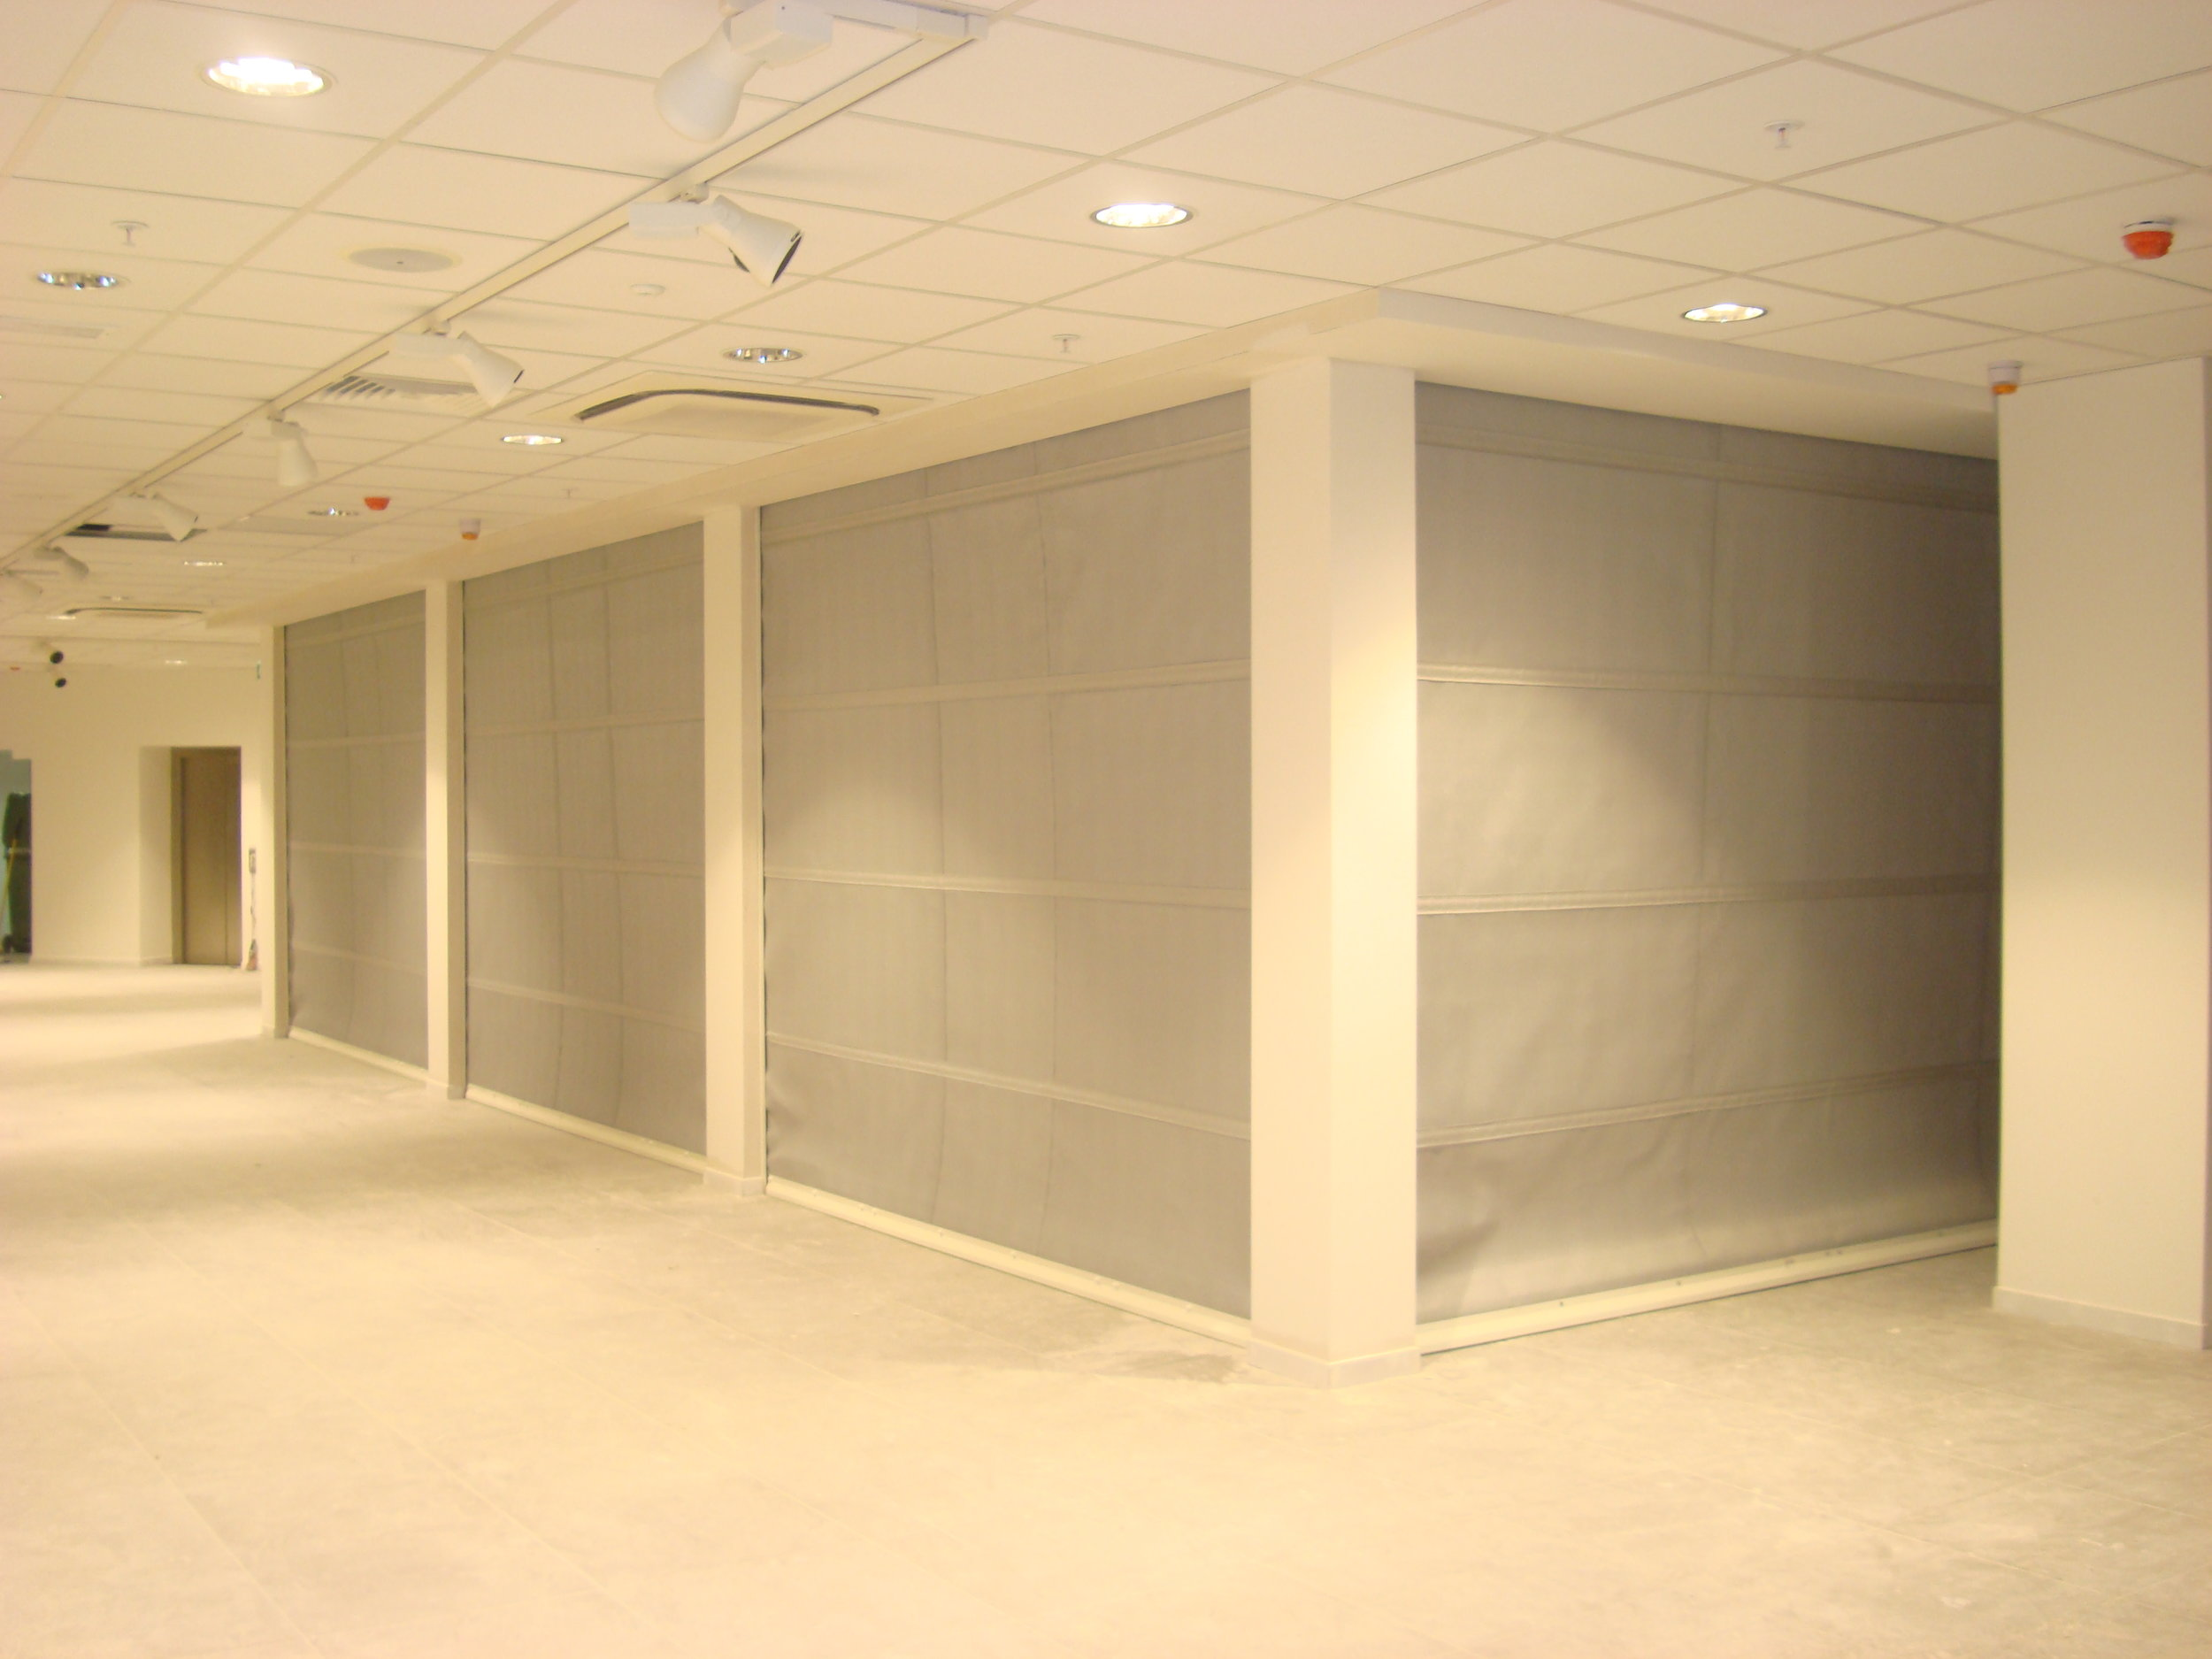 Fire curtains installed